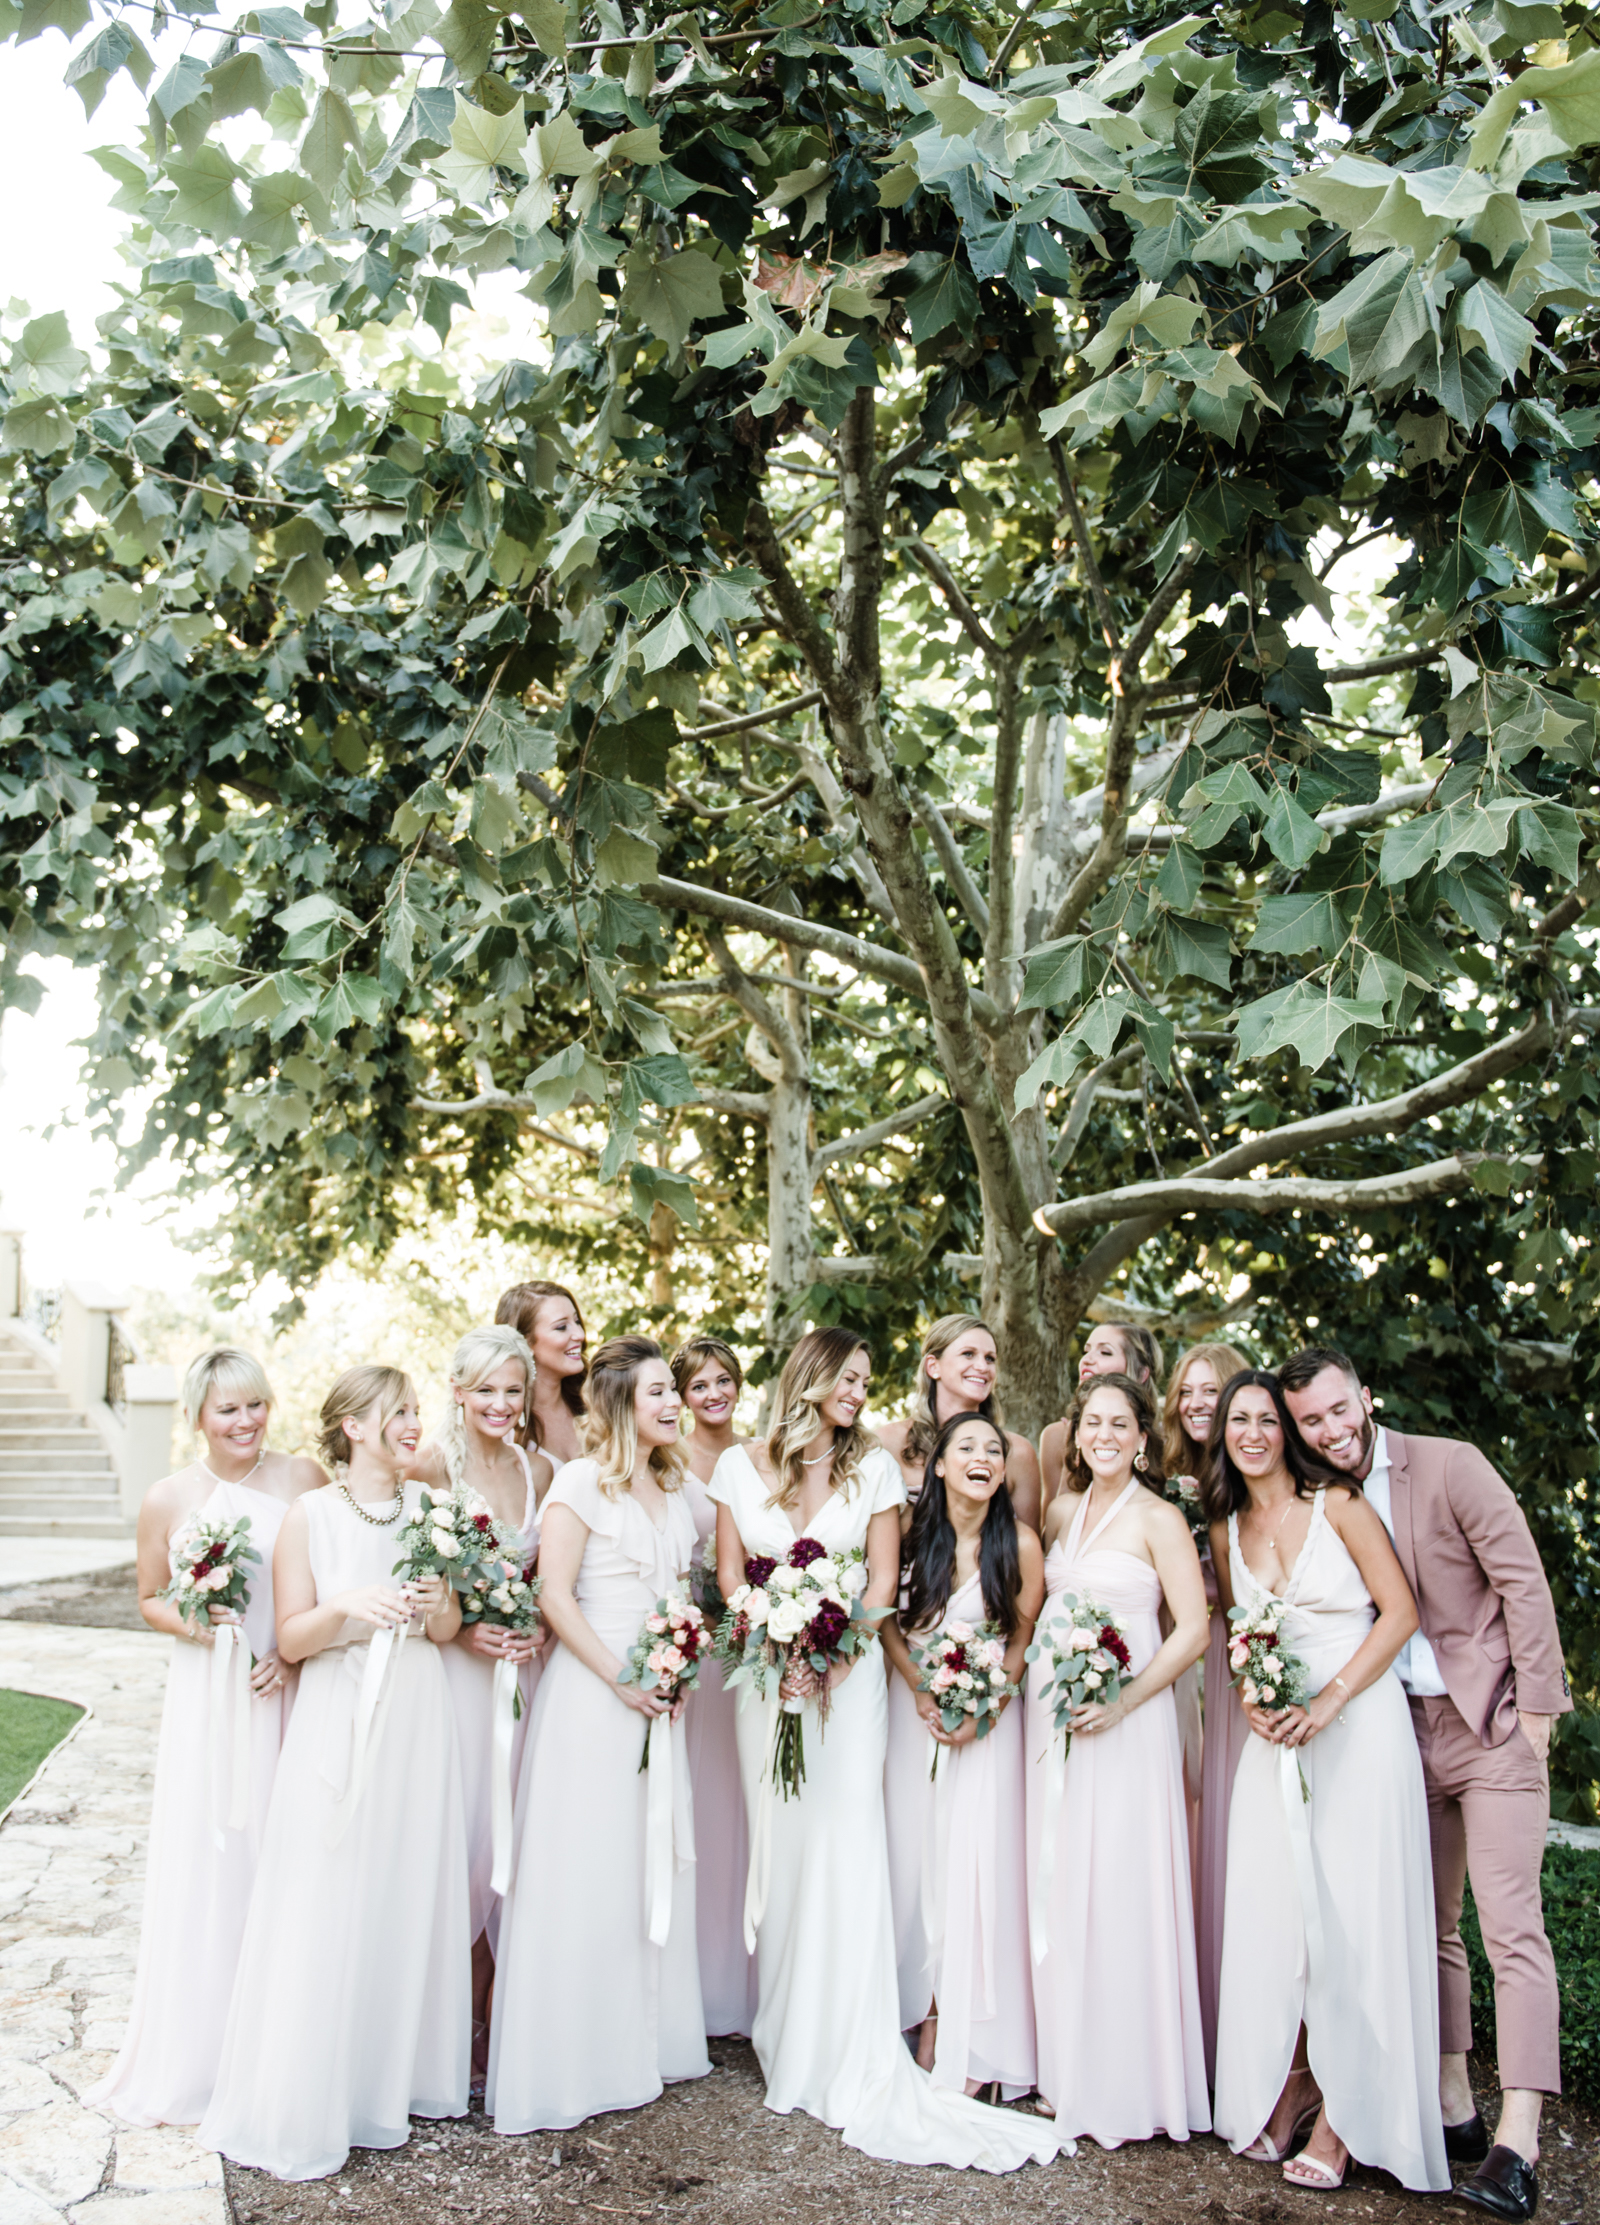 livvyland-blog-olivia-watson-wedding-villa-del-lago-austin-texas-fall-blush-burgundy-classic-romantic-joanna-august-mismatched-bridesmaid-dresses-3